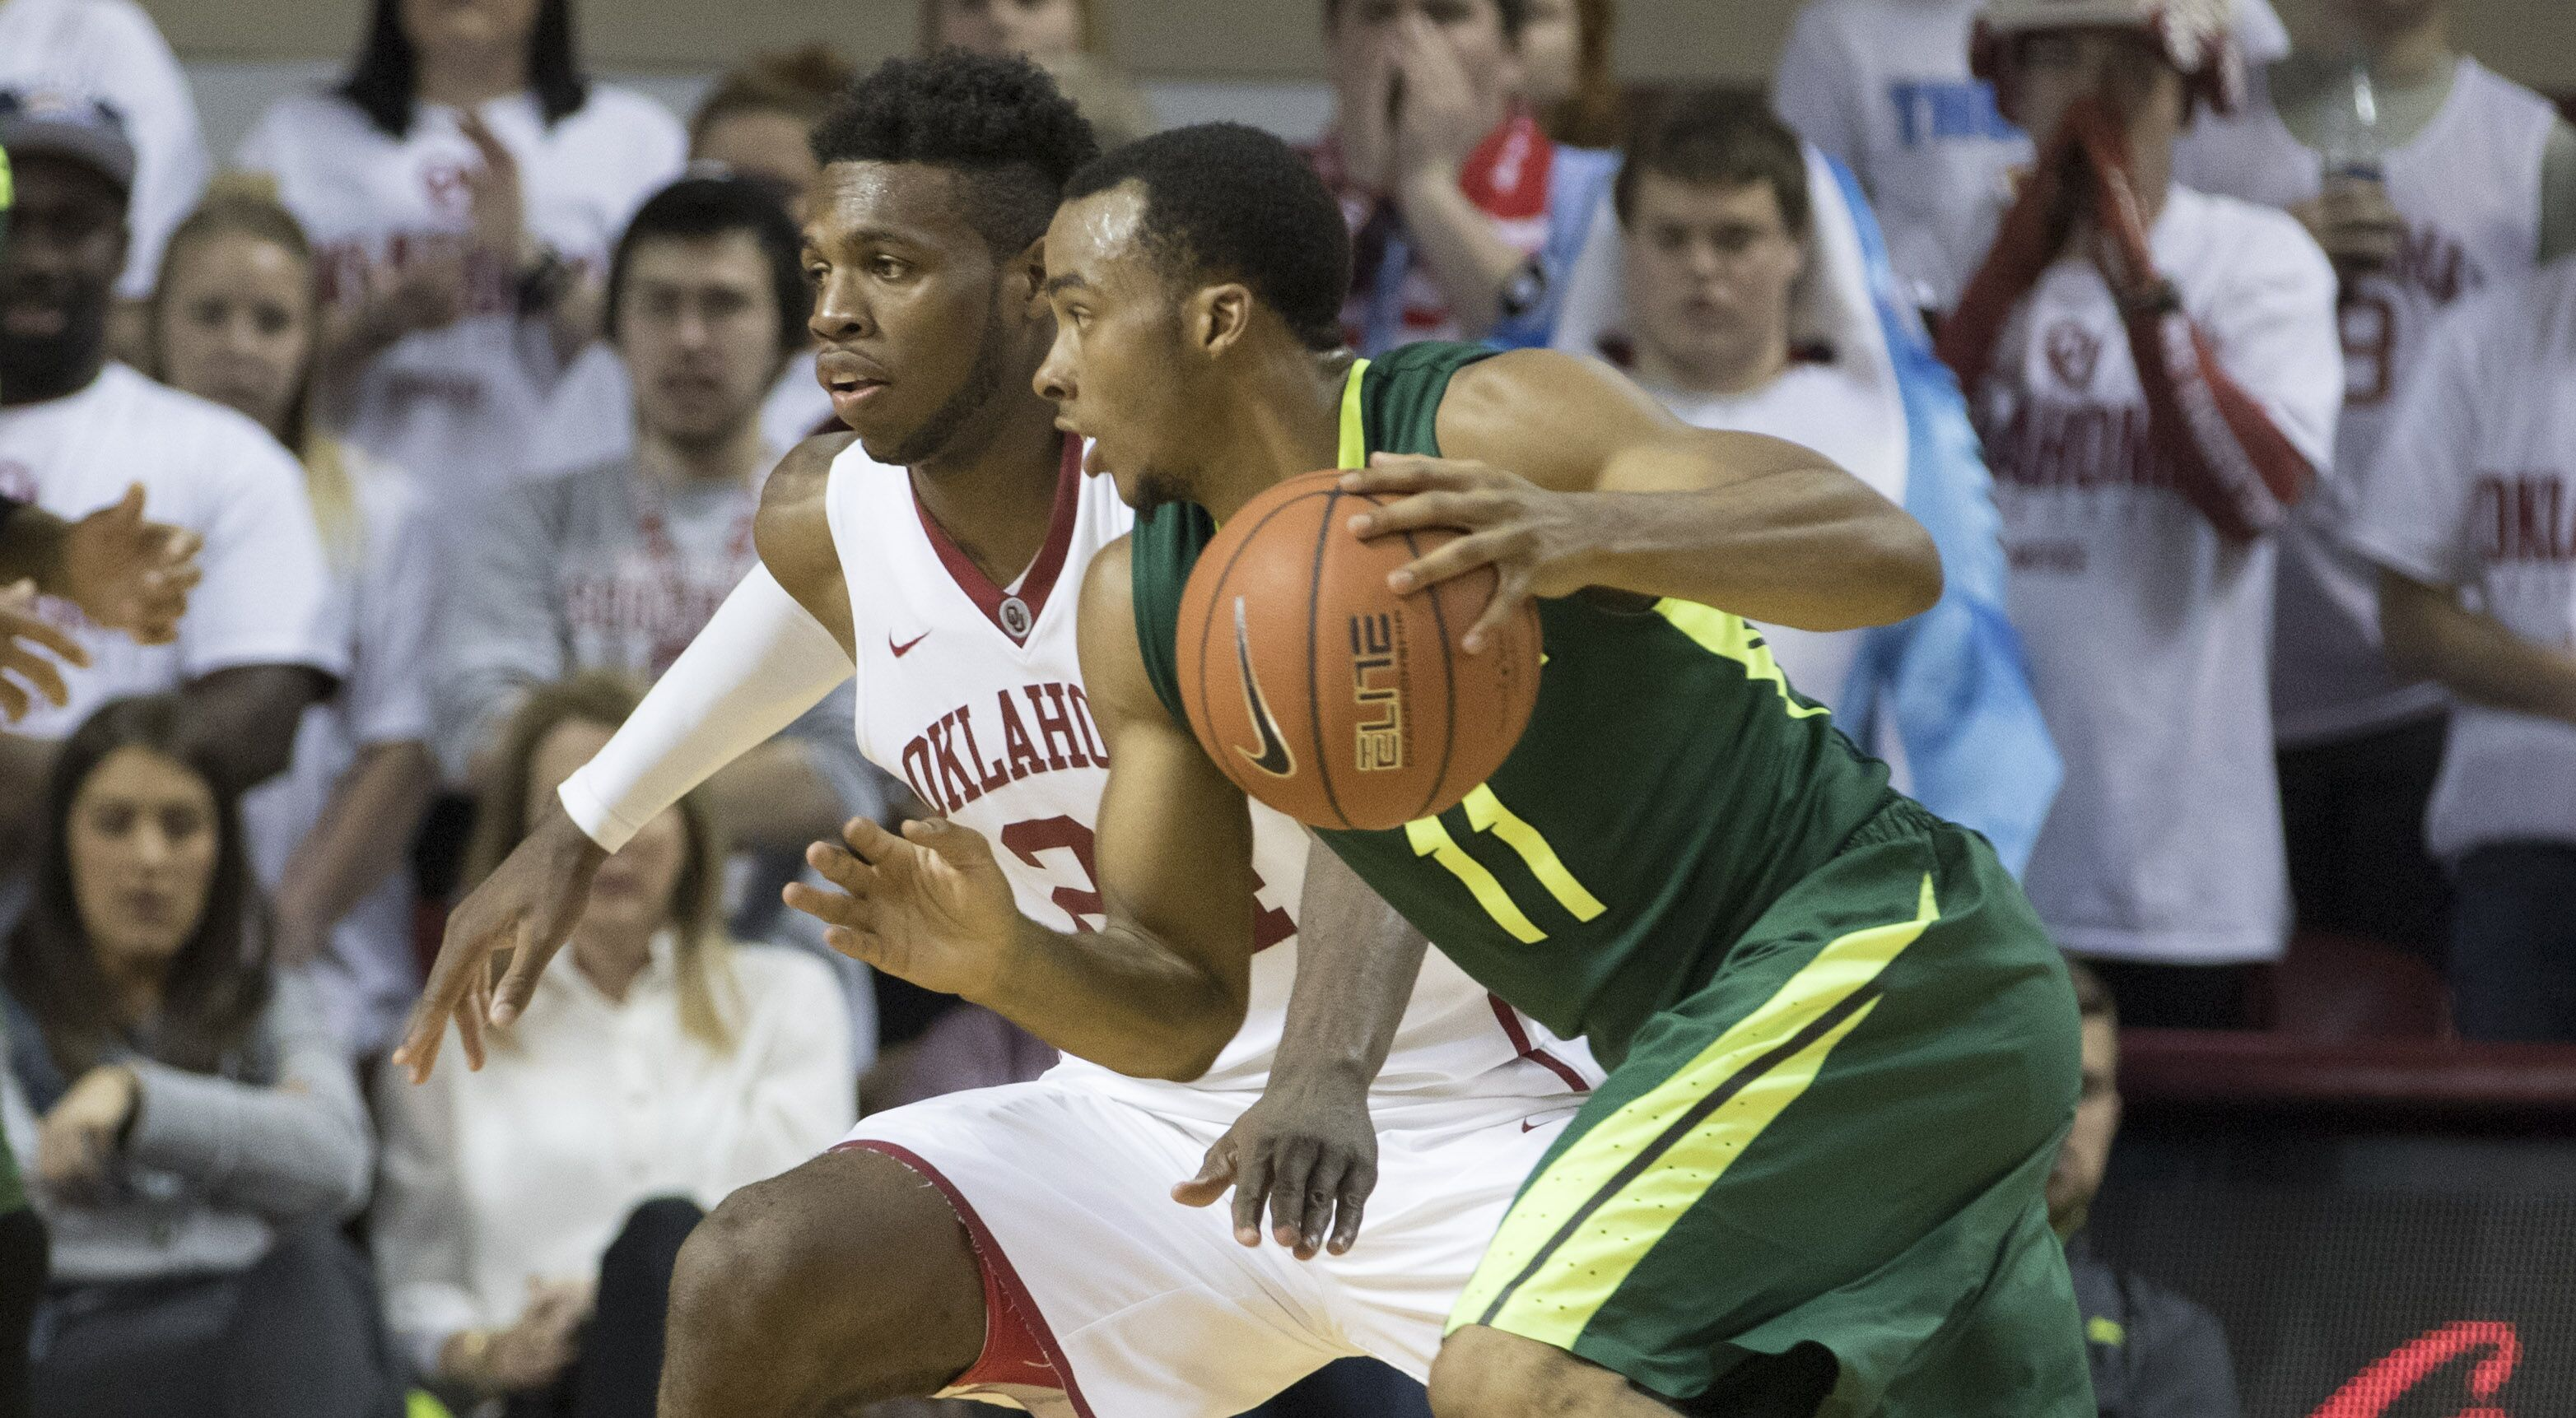 Oklahoma basketball: From frying pan into the fire as OU readies for No. 1 Baylor